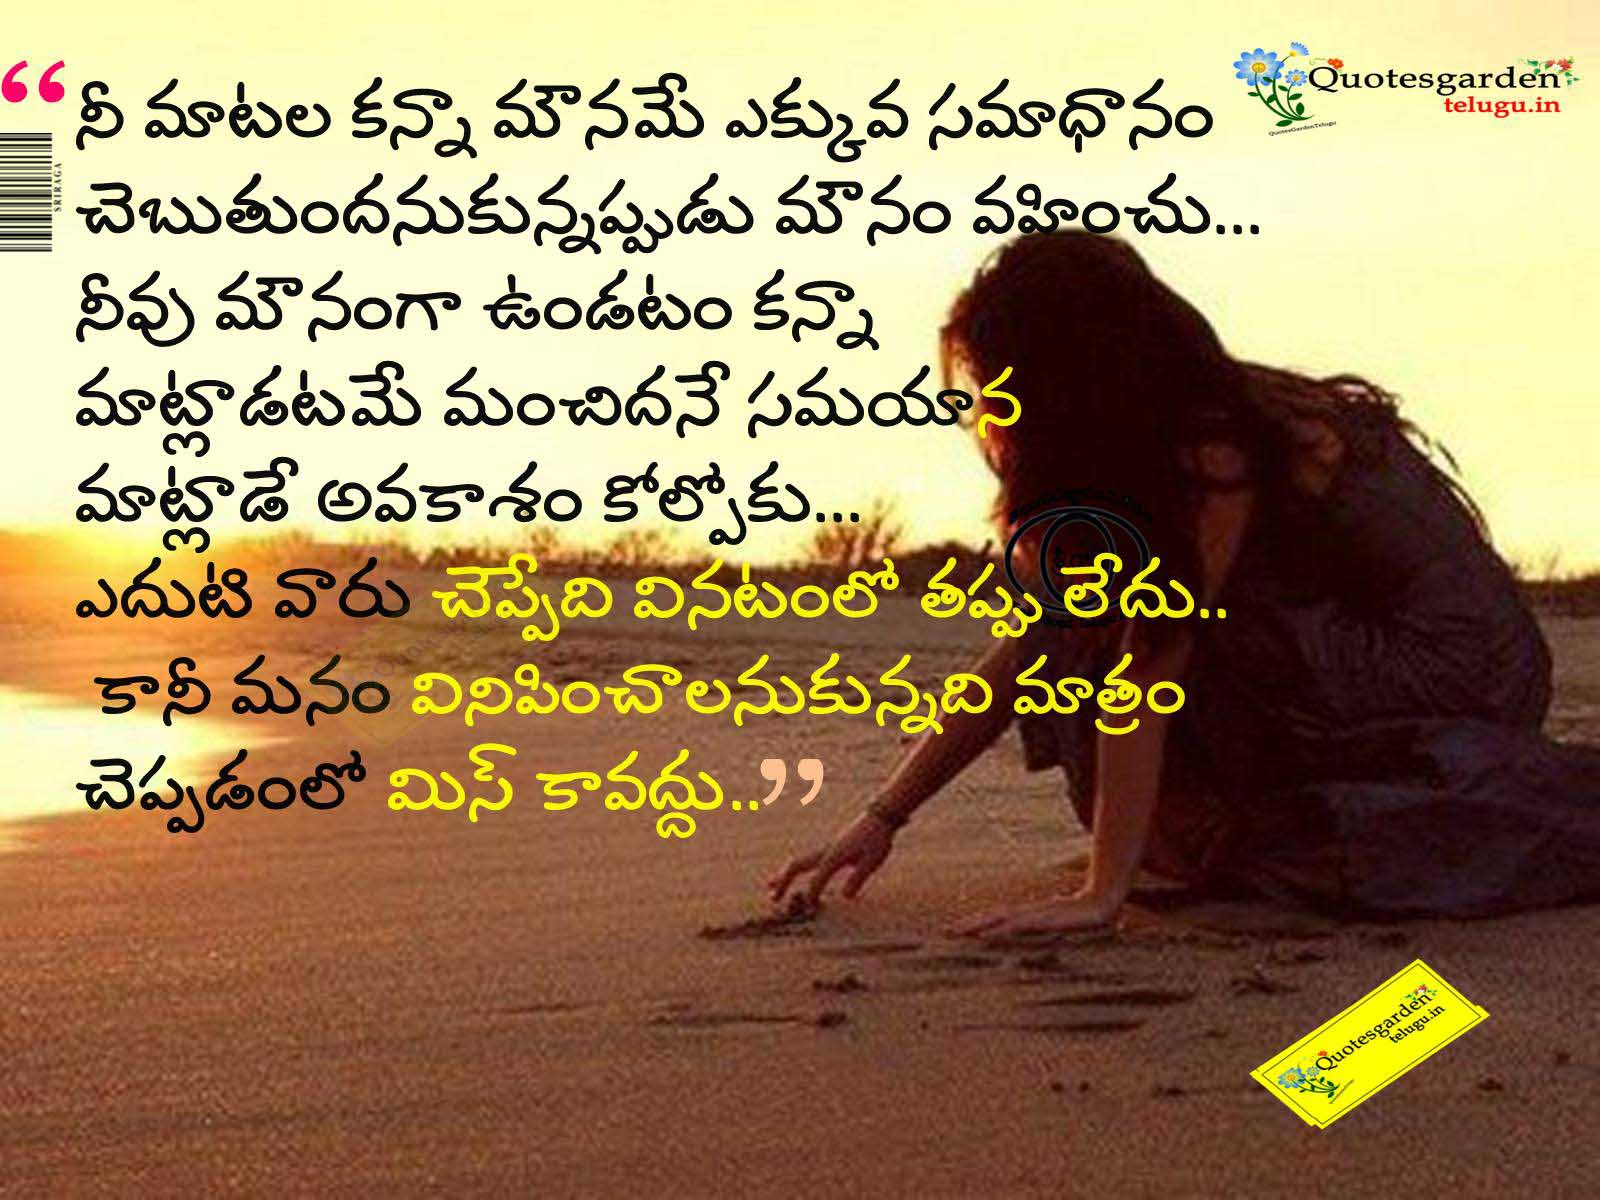 Best Quotes About Life In Telugu